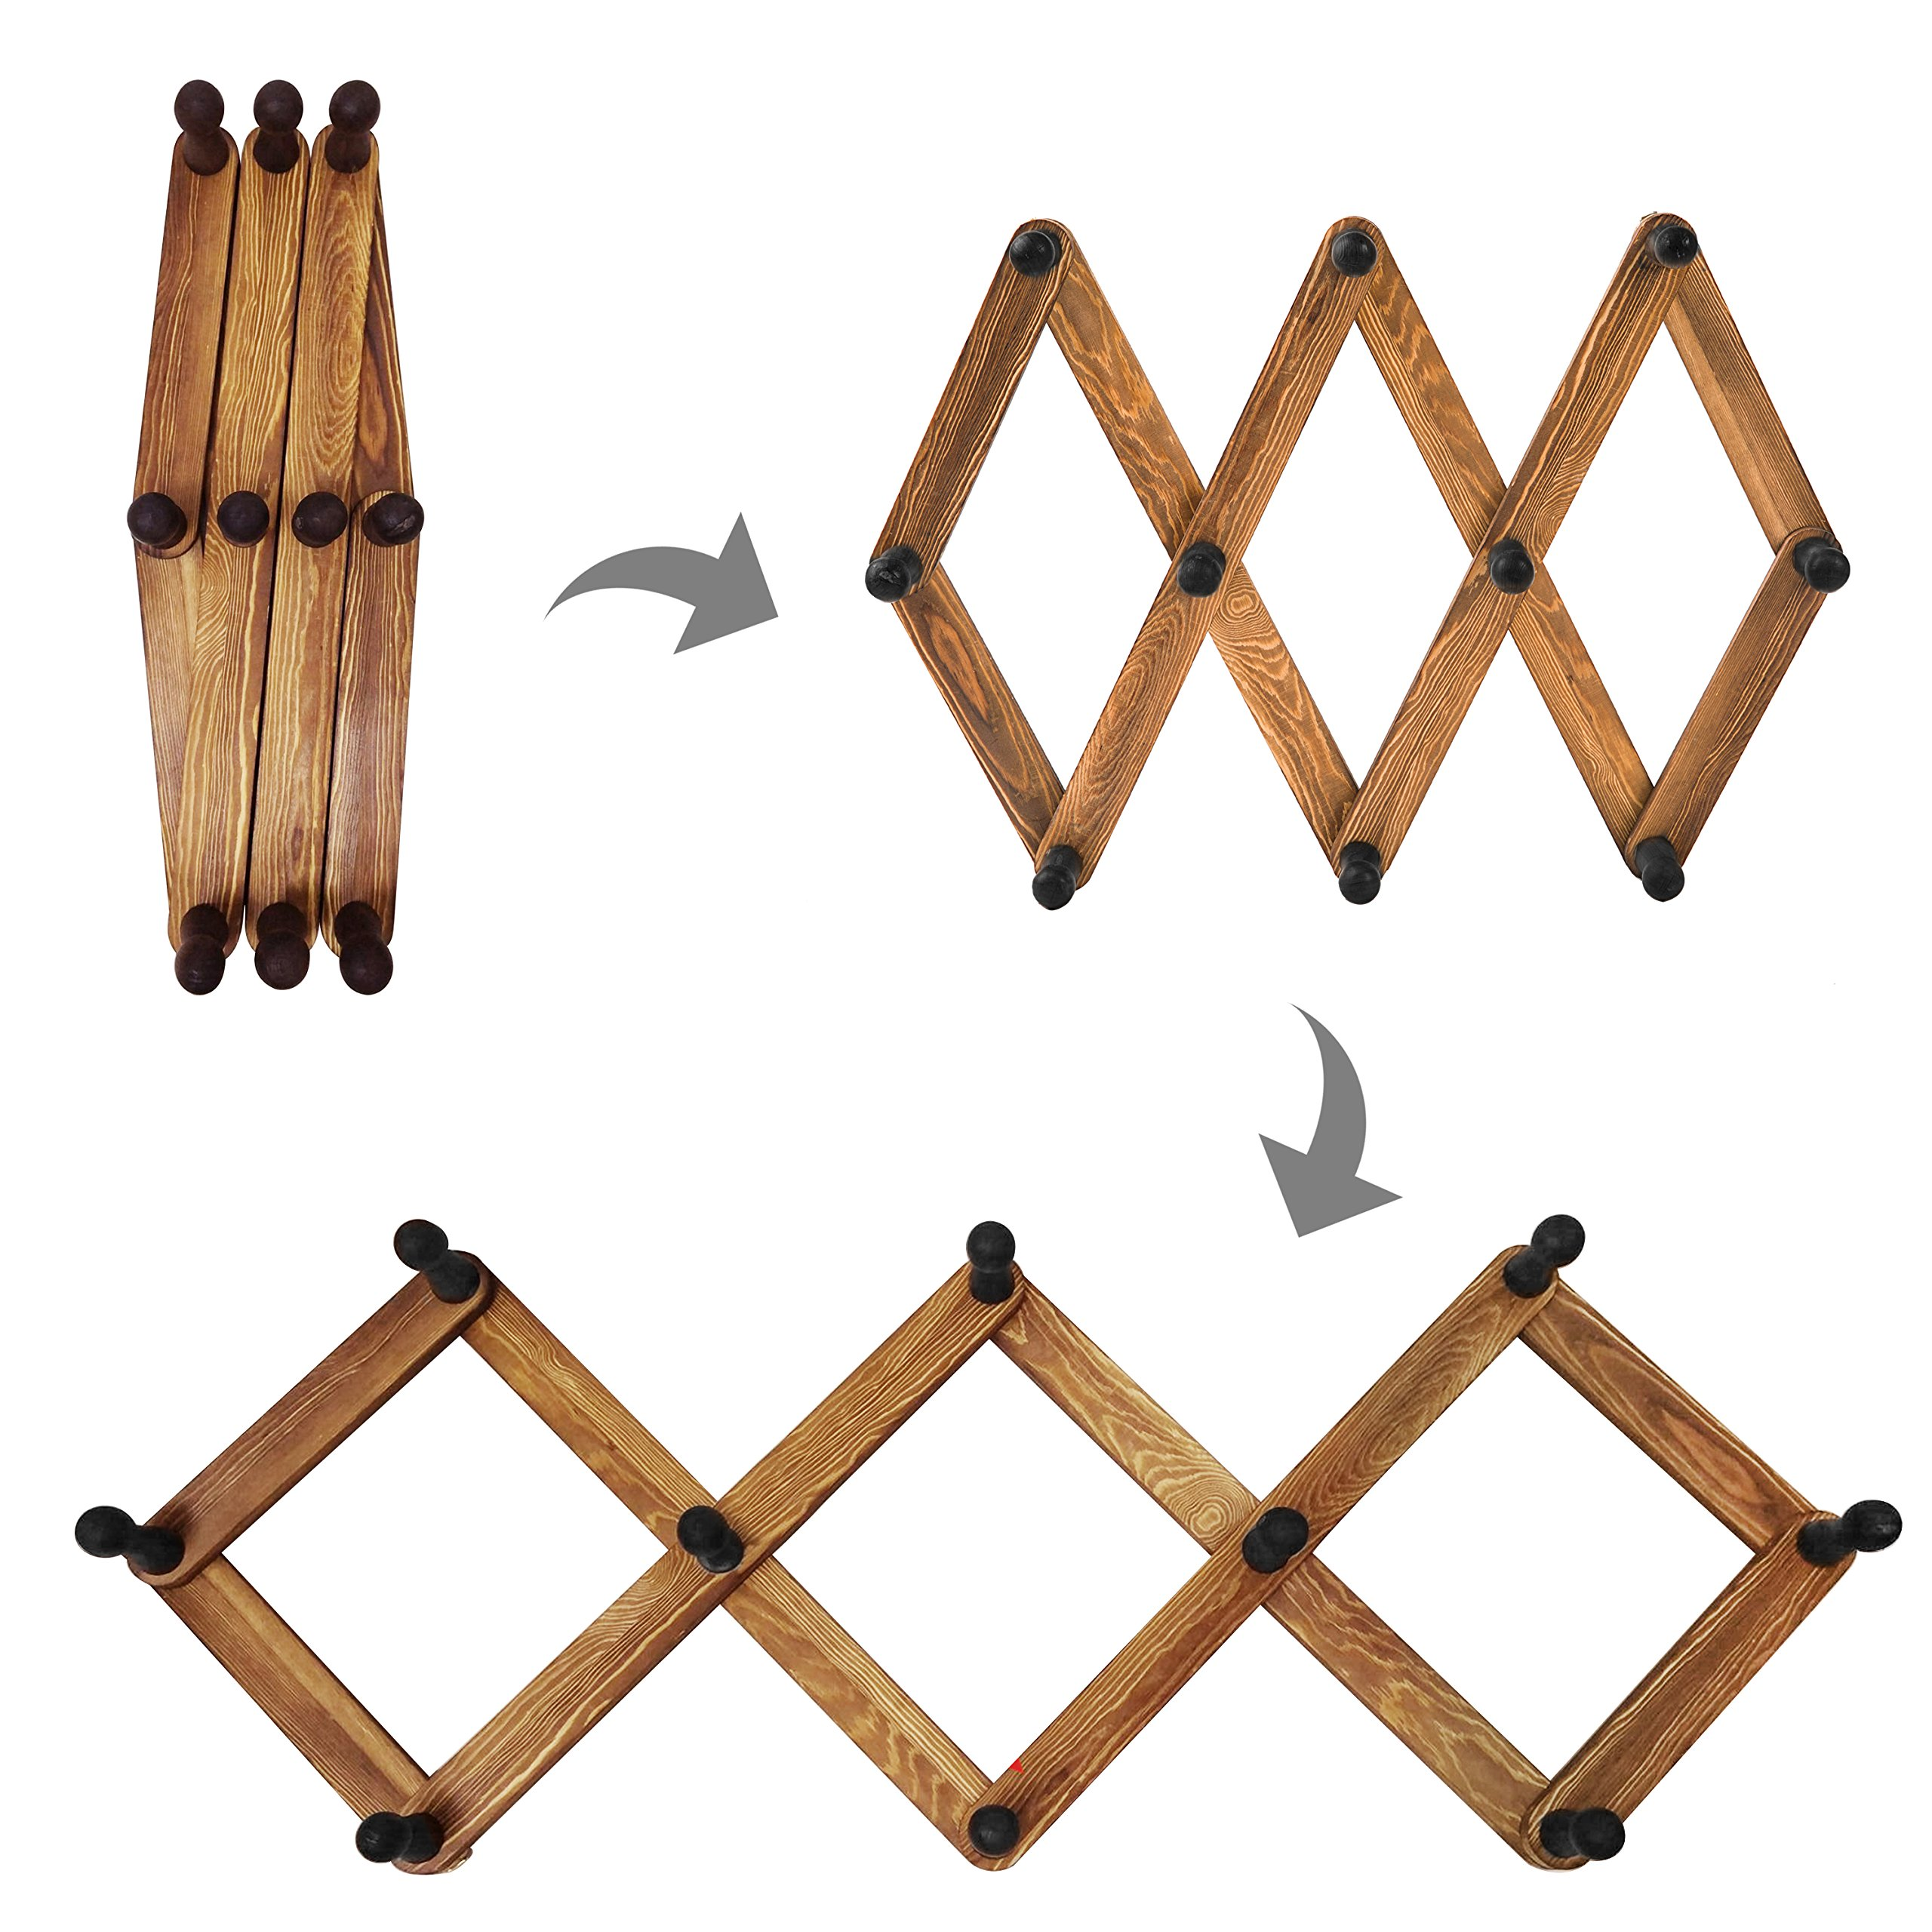 MyGift 10 Hook Torched Wood Wall Mounted Expandable Accordion Peg Coat Rack Hanger by MyGift (Image #4)